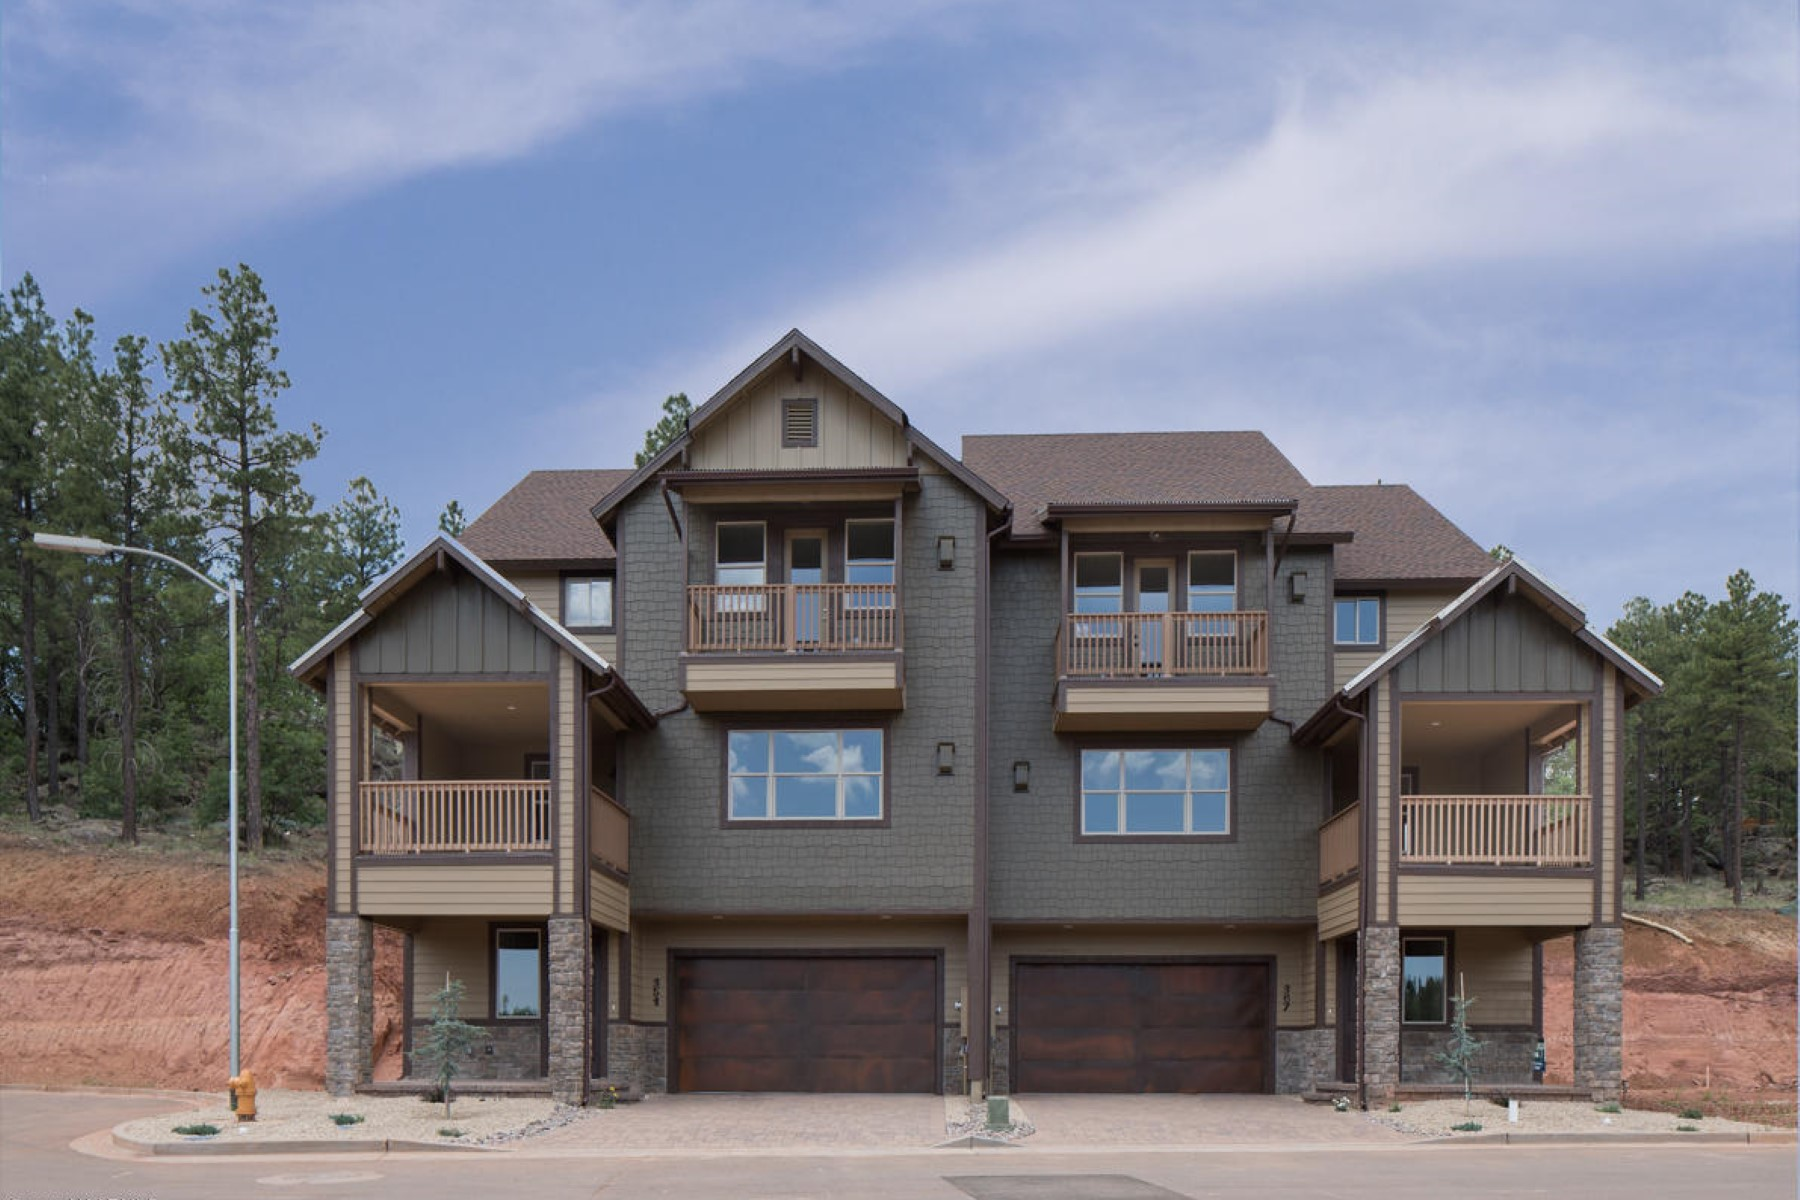 Townhouse for Sale at magnificent San Francisco and Mt. Elden Peak views from this townhouse. 495 N Moriah DR Lot 34 Flagstaff, Arizona 86001 United States